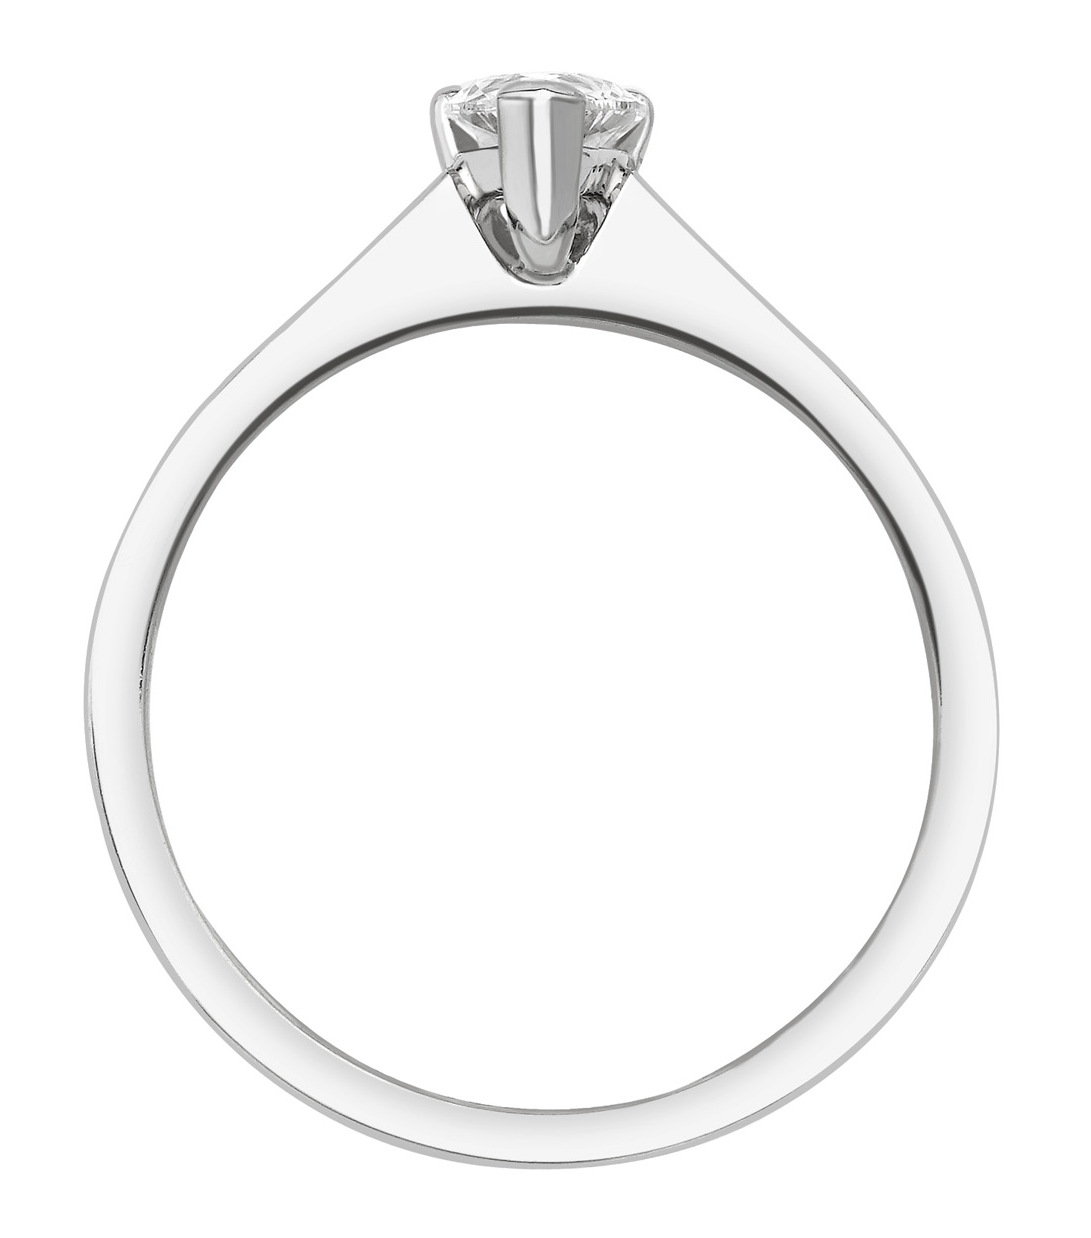 Marquise Cut Platinum Ring with Channel Set Shoulders GRC751PLT Image 2